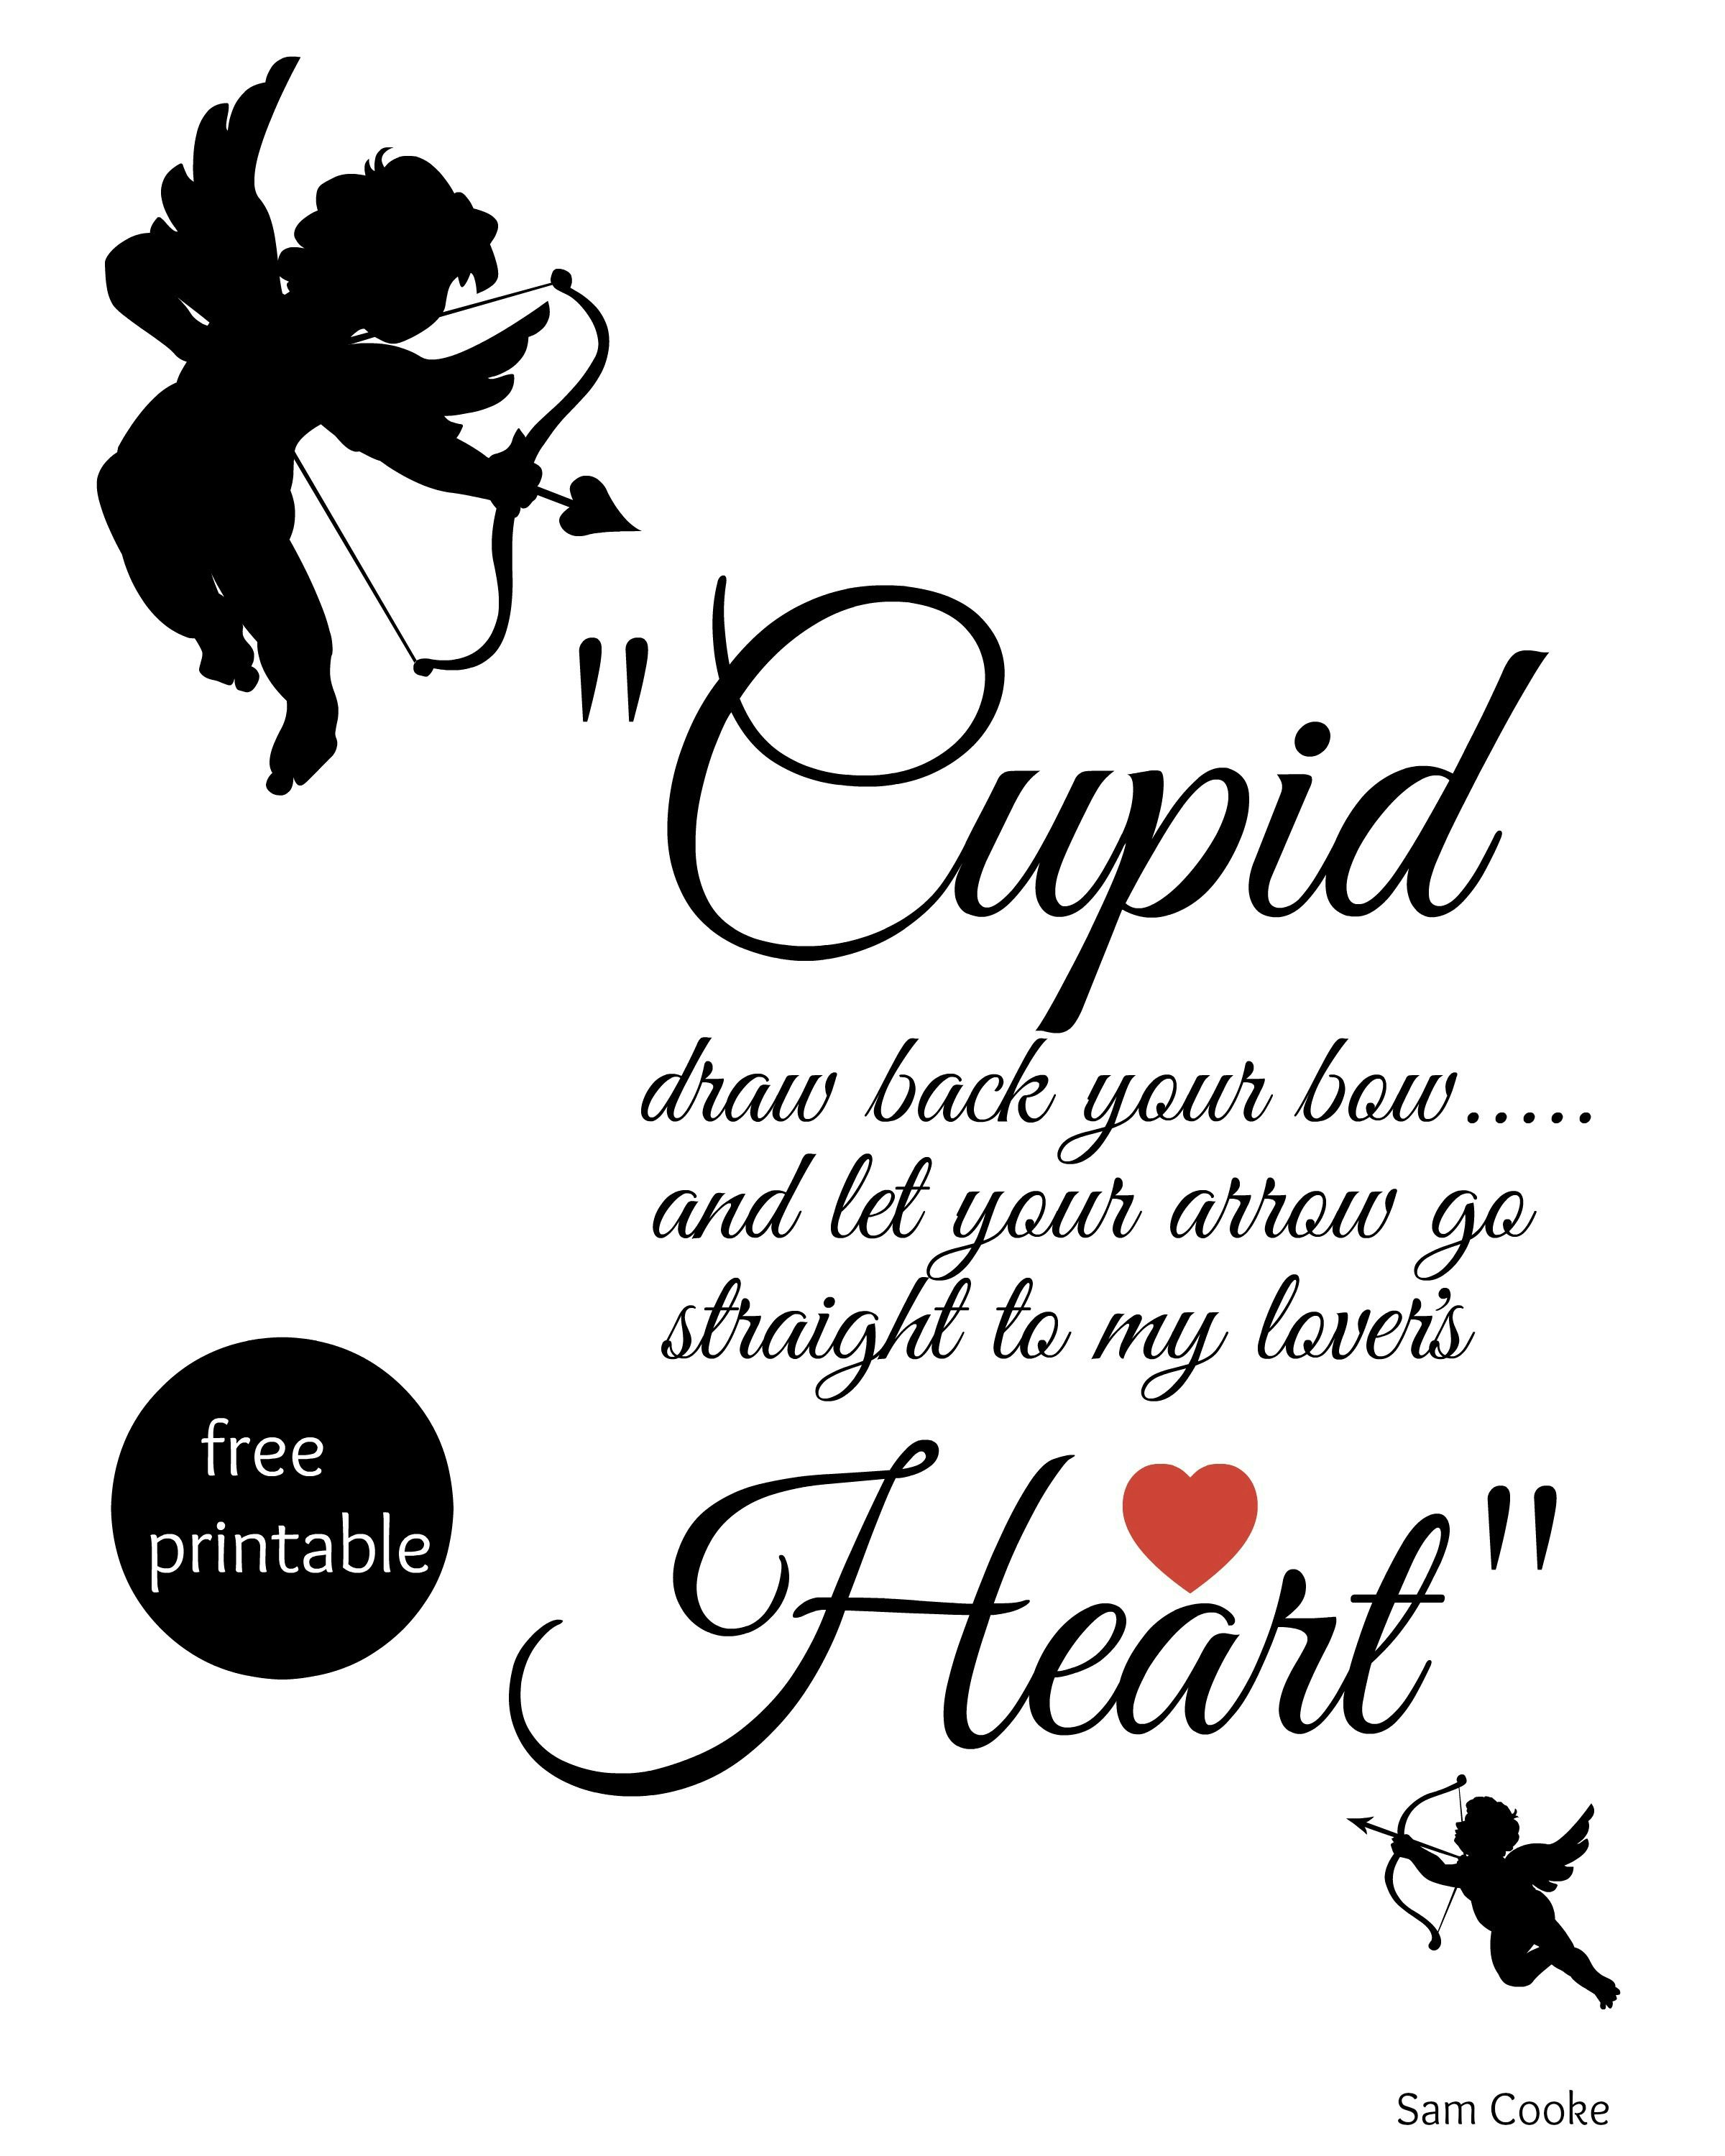 Cupid Draw Back Your Bow